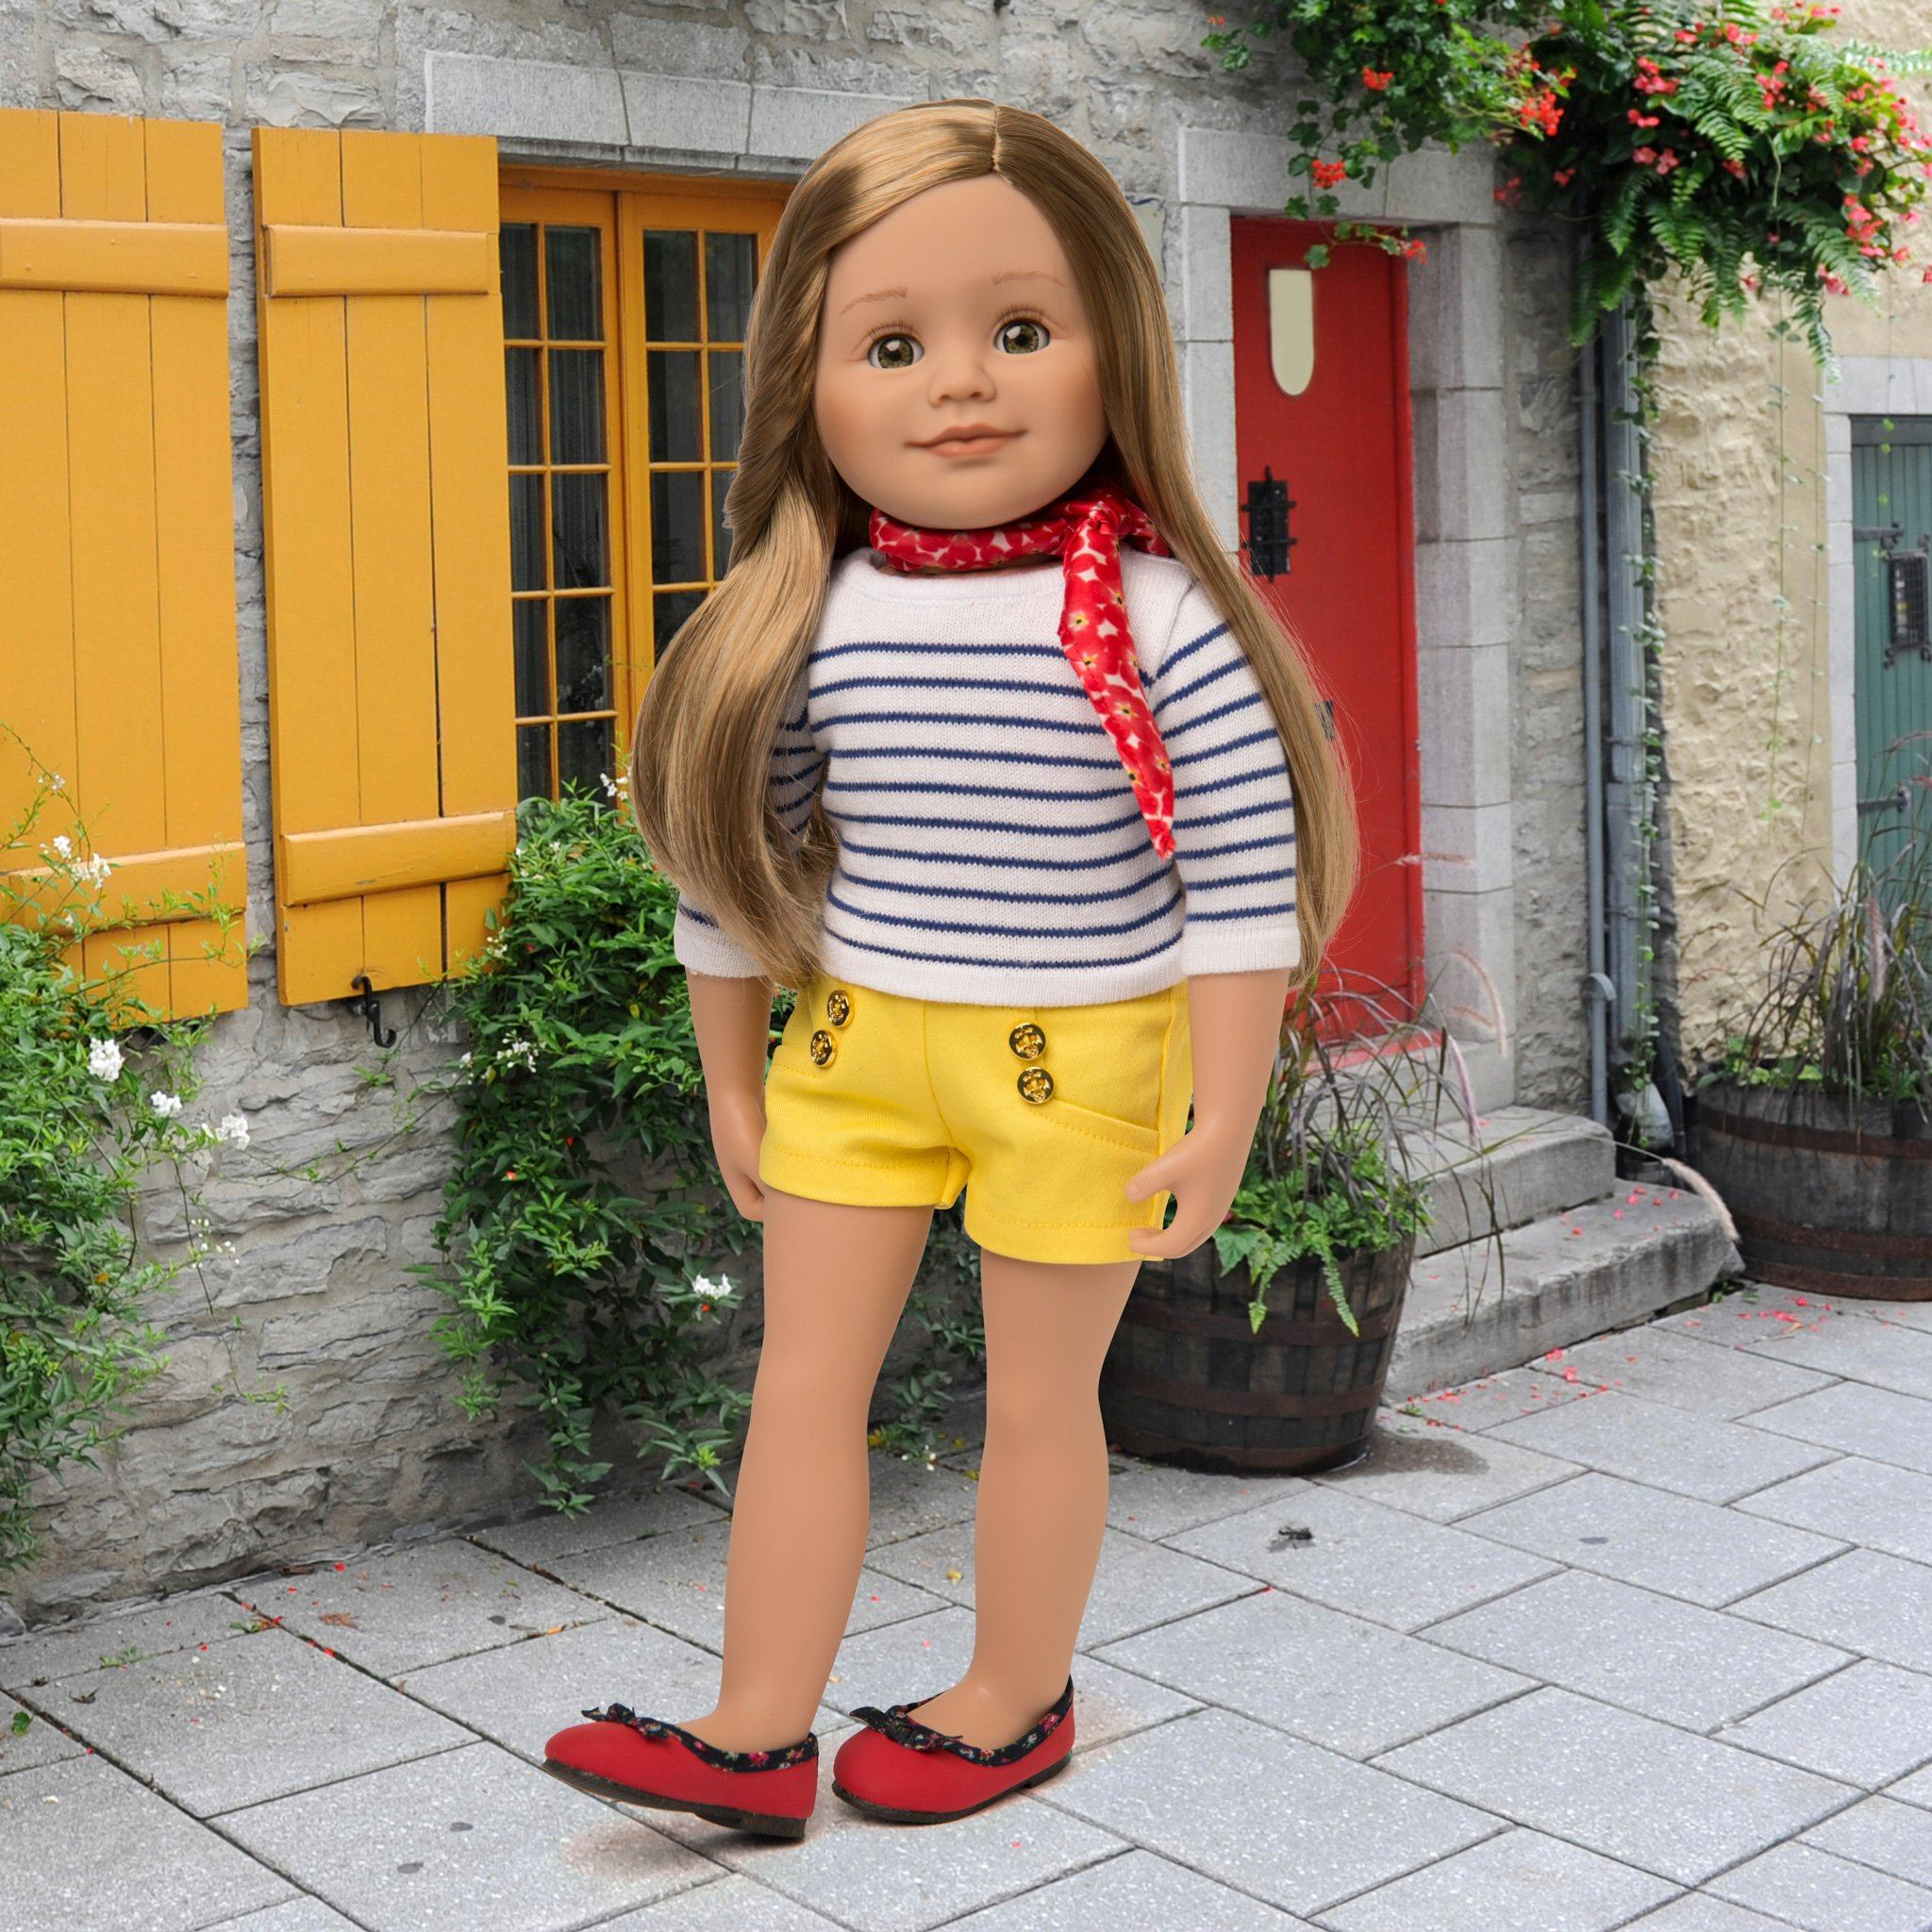 Nautical summer clothes on 18 inch doll includes sailor shorts, striped top, scarf and red shoes.